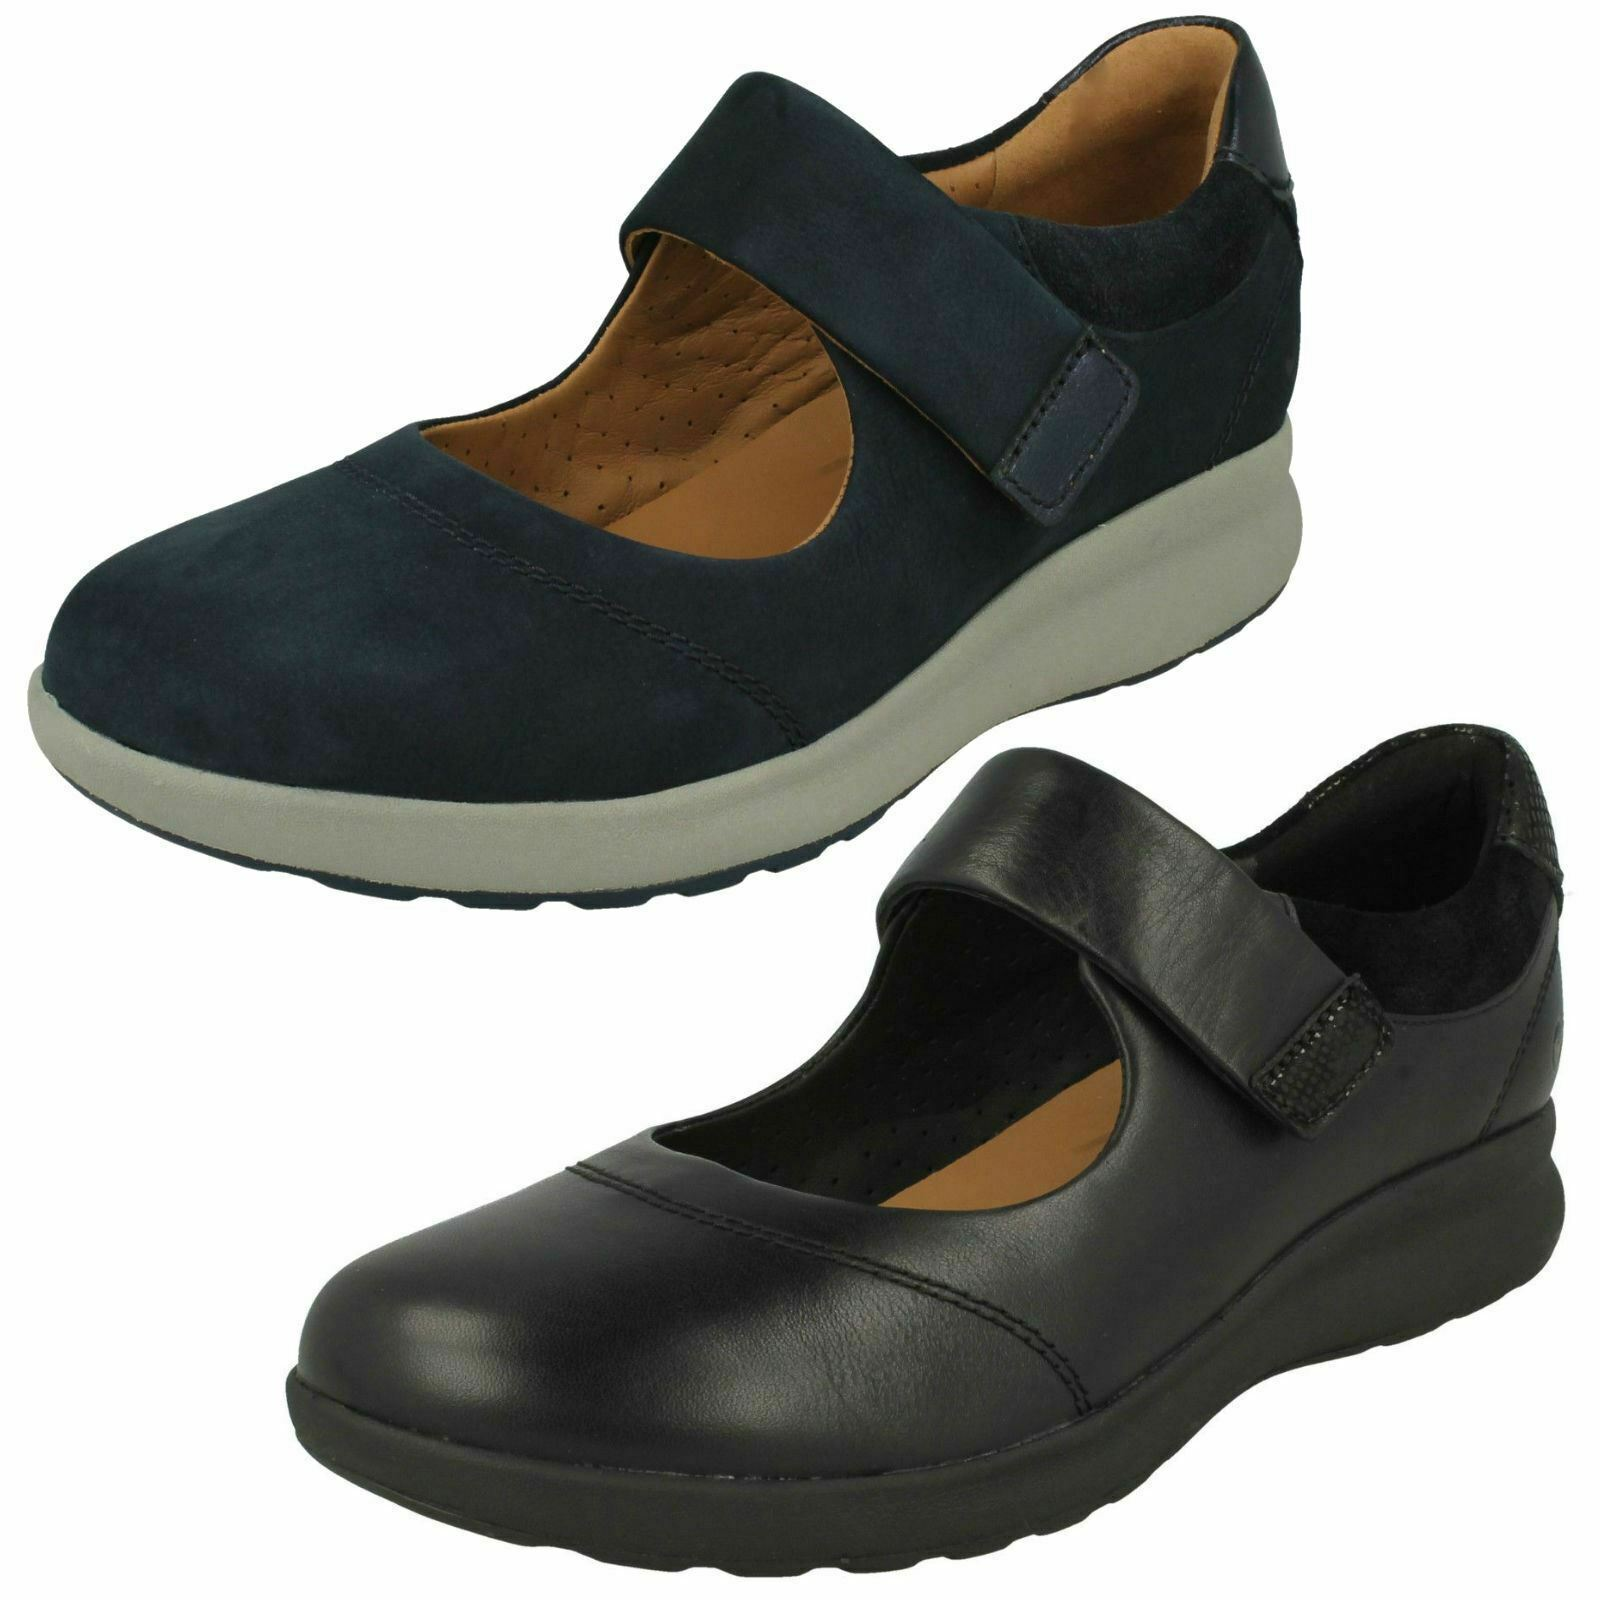 Ladies Clarks Unstructured  'Un Adorn Strap' Casual Leather shoes - D Fitting